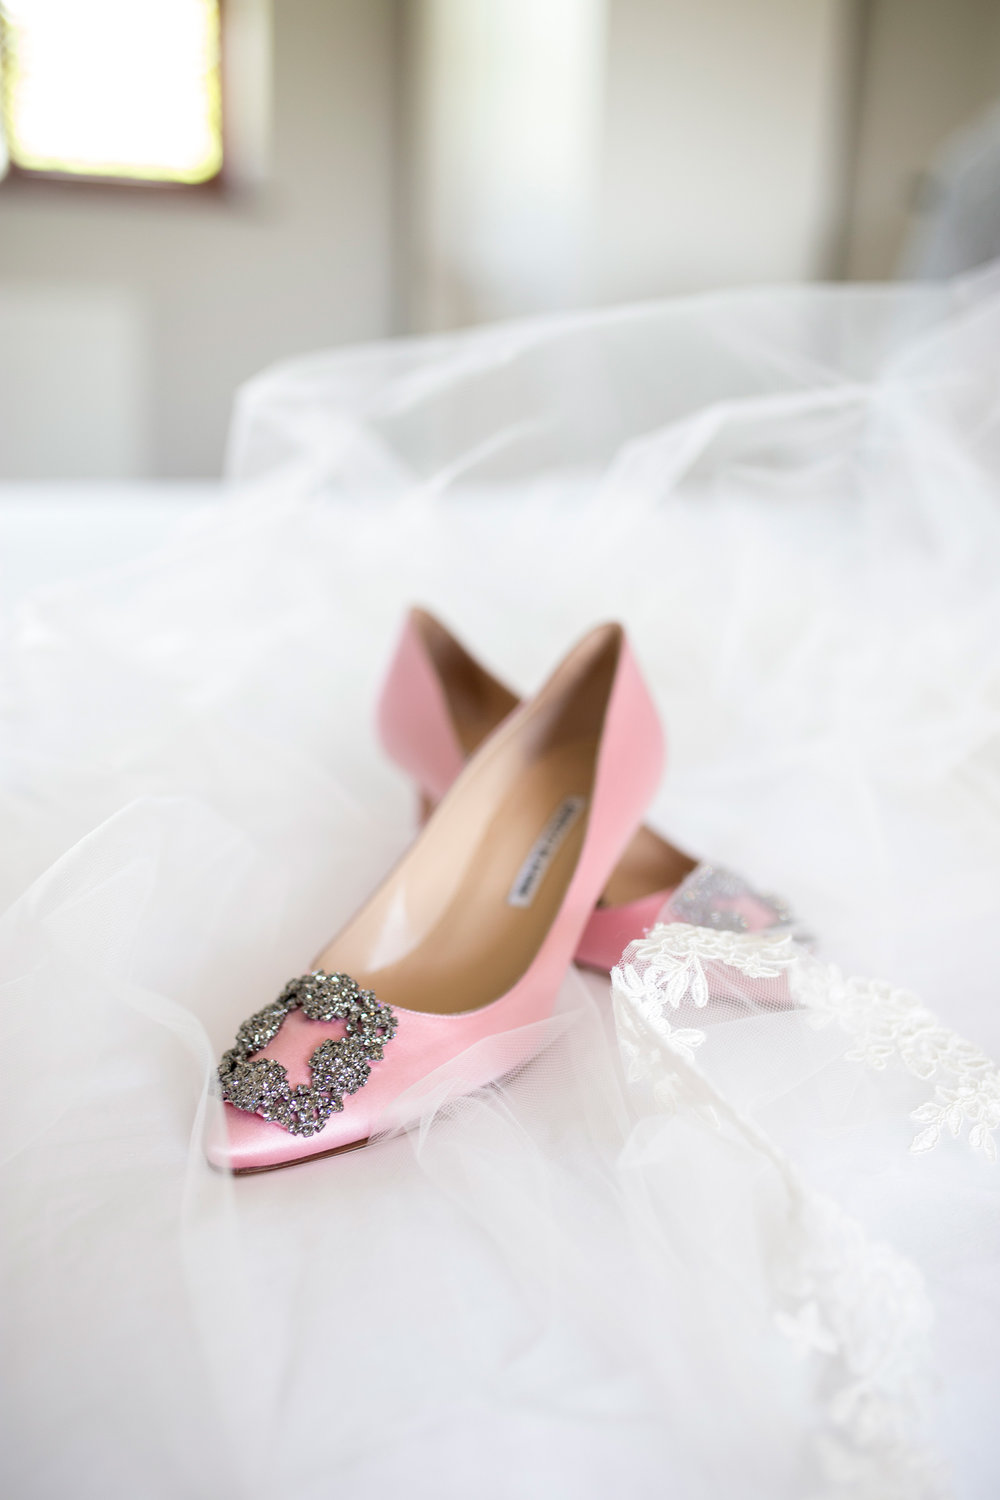 Manolo Blahnik, Wedding Shoes, Pink Shoes, Wedding Details, Buckinghamshire Wedding,